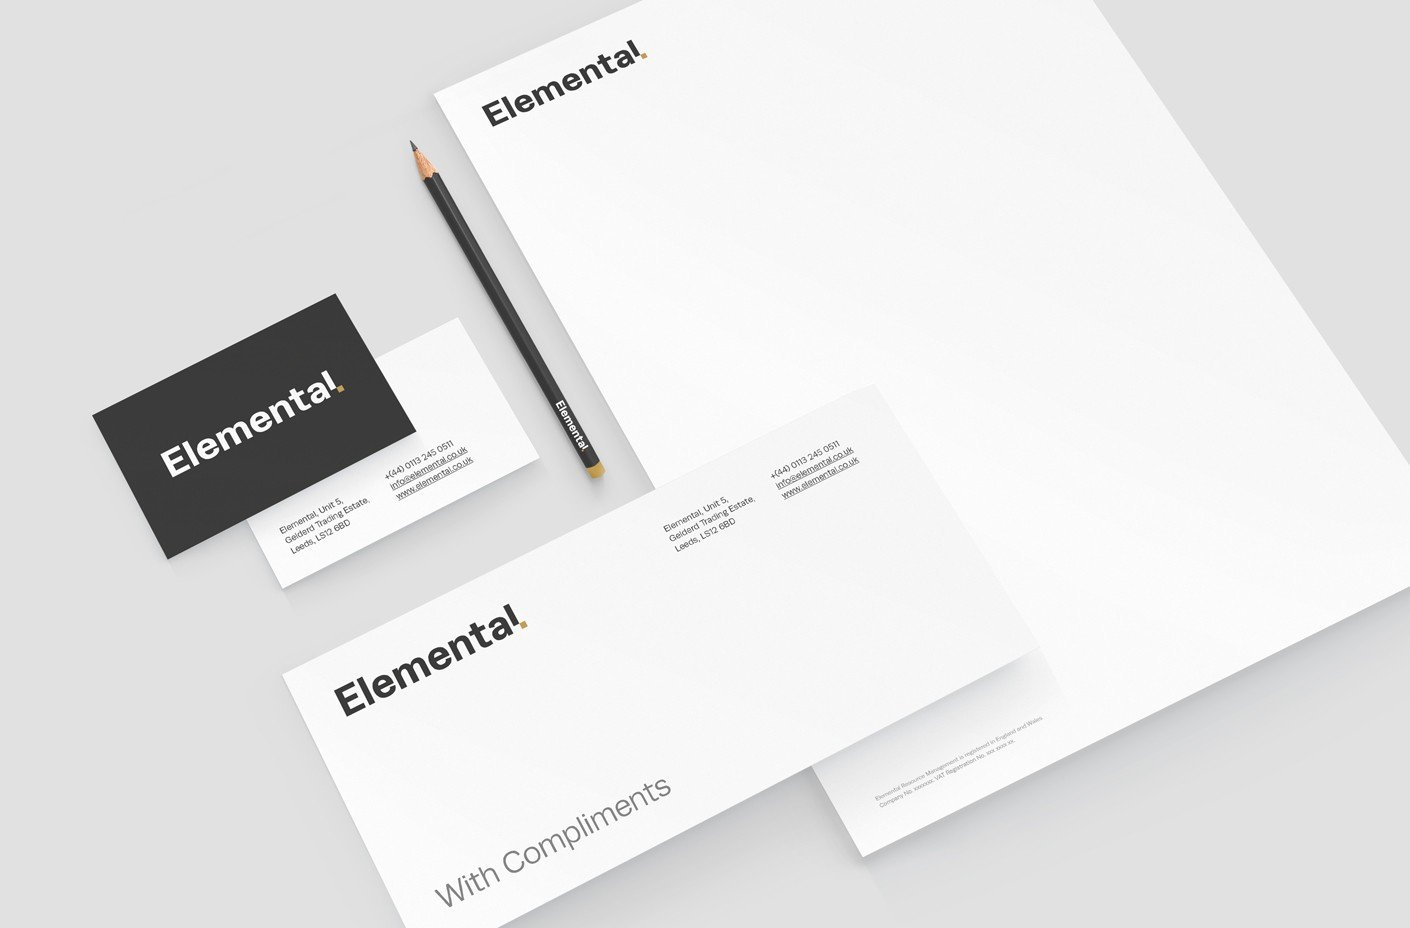 Elemental stationery